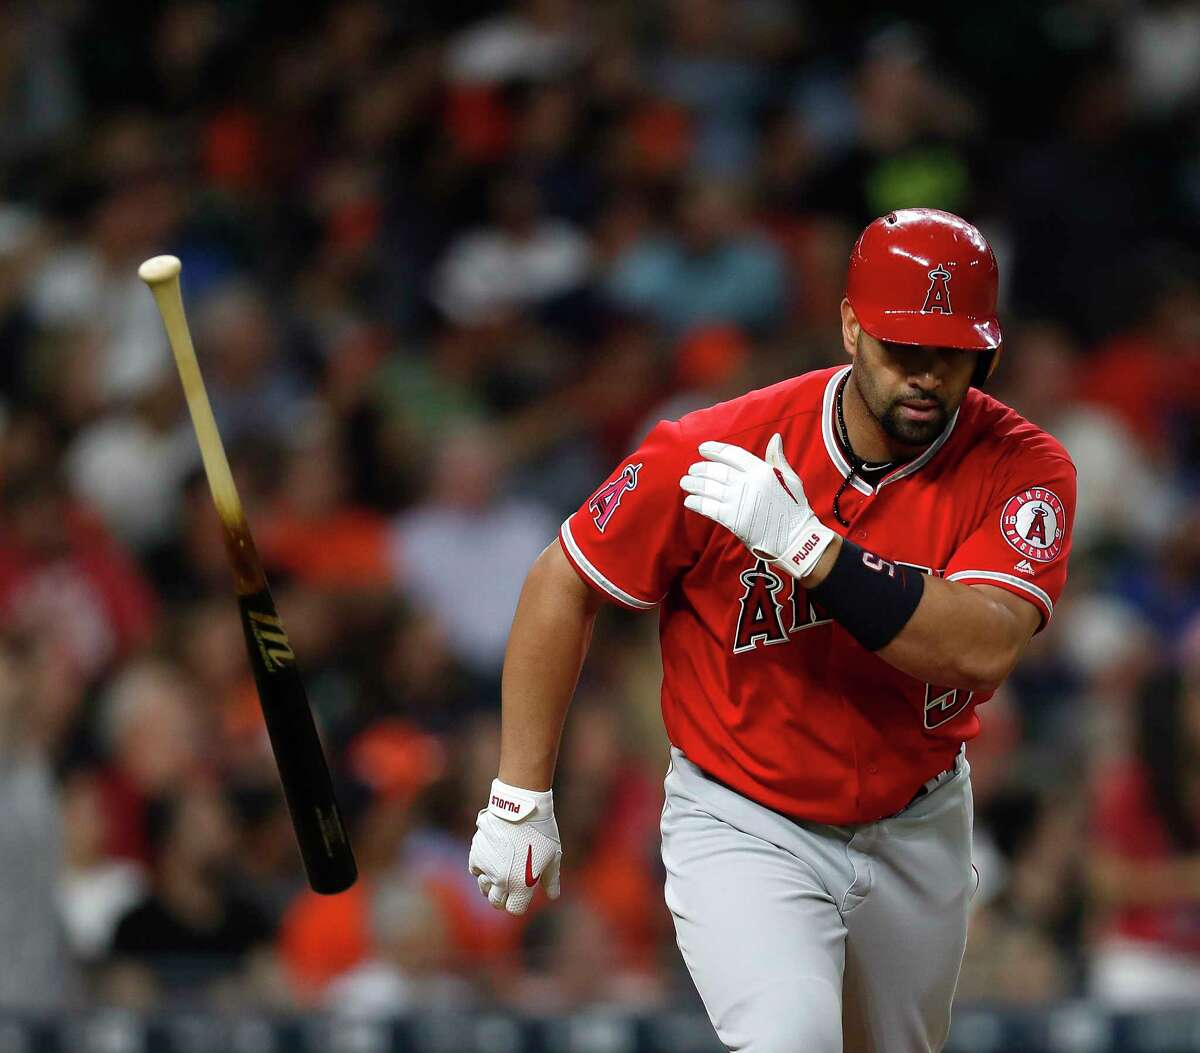 Los Angeles Angels designated hitter Albert Pujols (5) tosses his bat after hitting a three-run home run of of Astros starting pitcher Joe Musgrove during the fifth inning of an MLB baseball game at Minute Maid Park, Tuesday, April 18, 2017, in Houston.